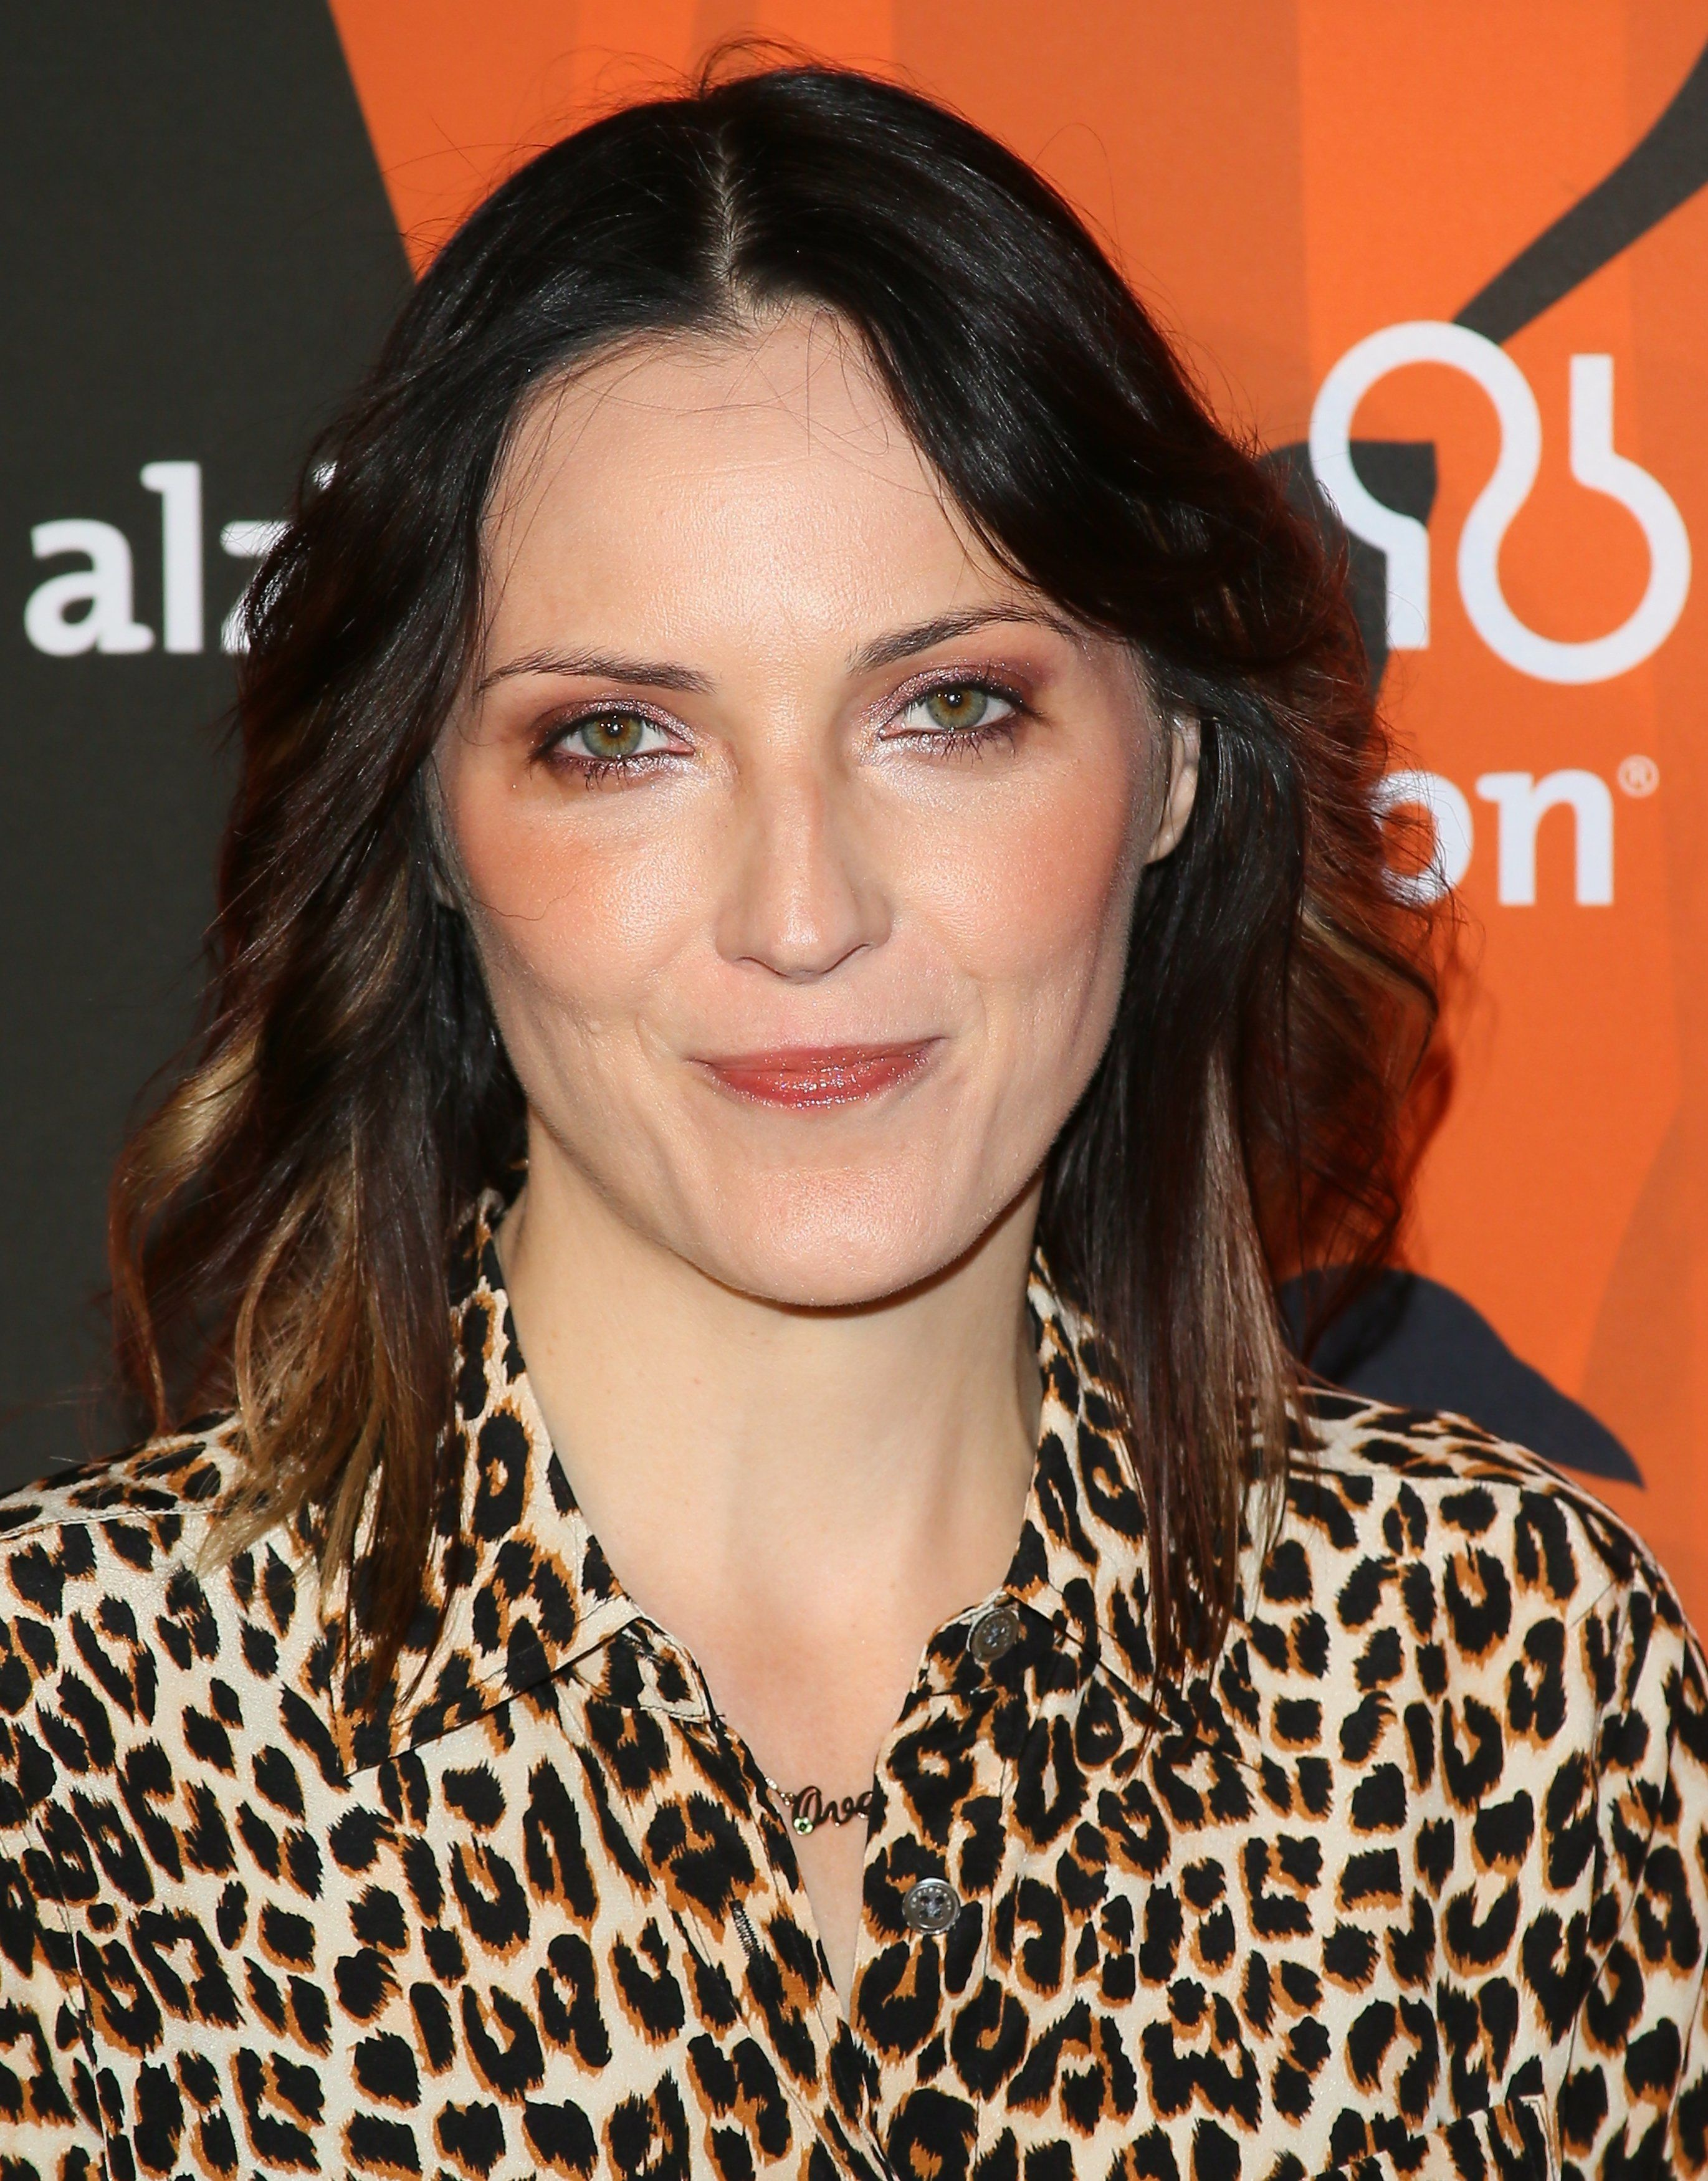 The Bob Cesca Show Podcast Comedian Jen Kirkman Talks